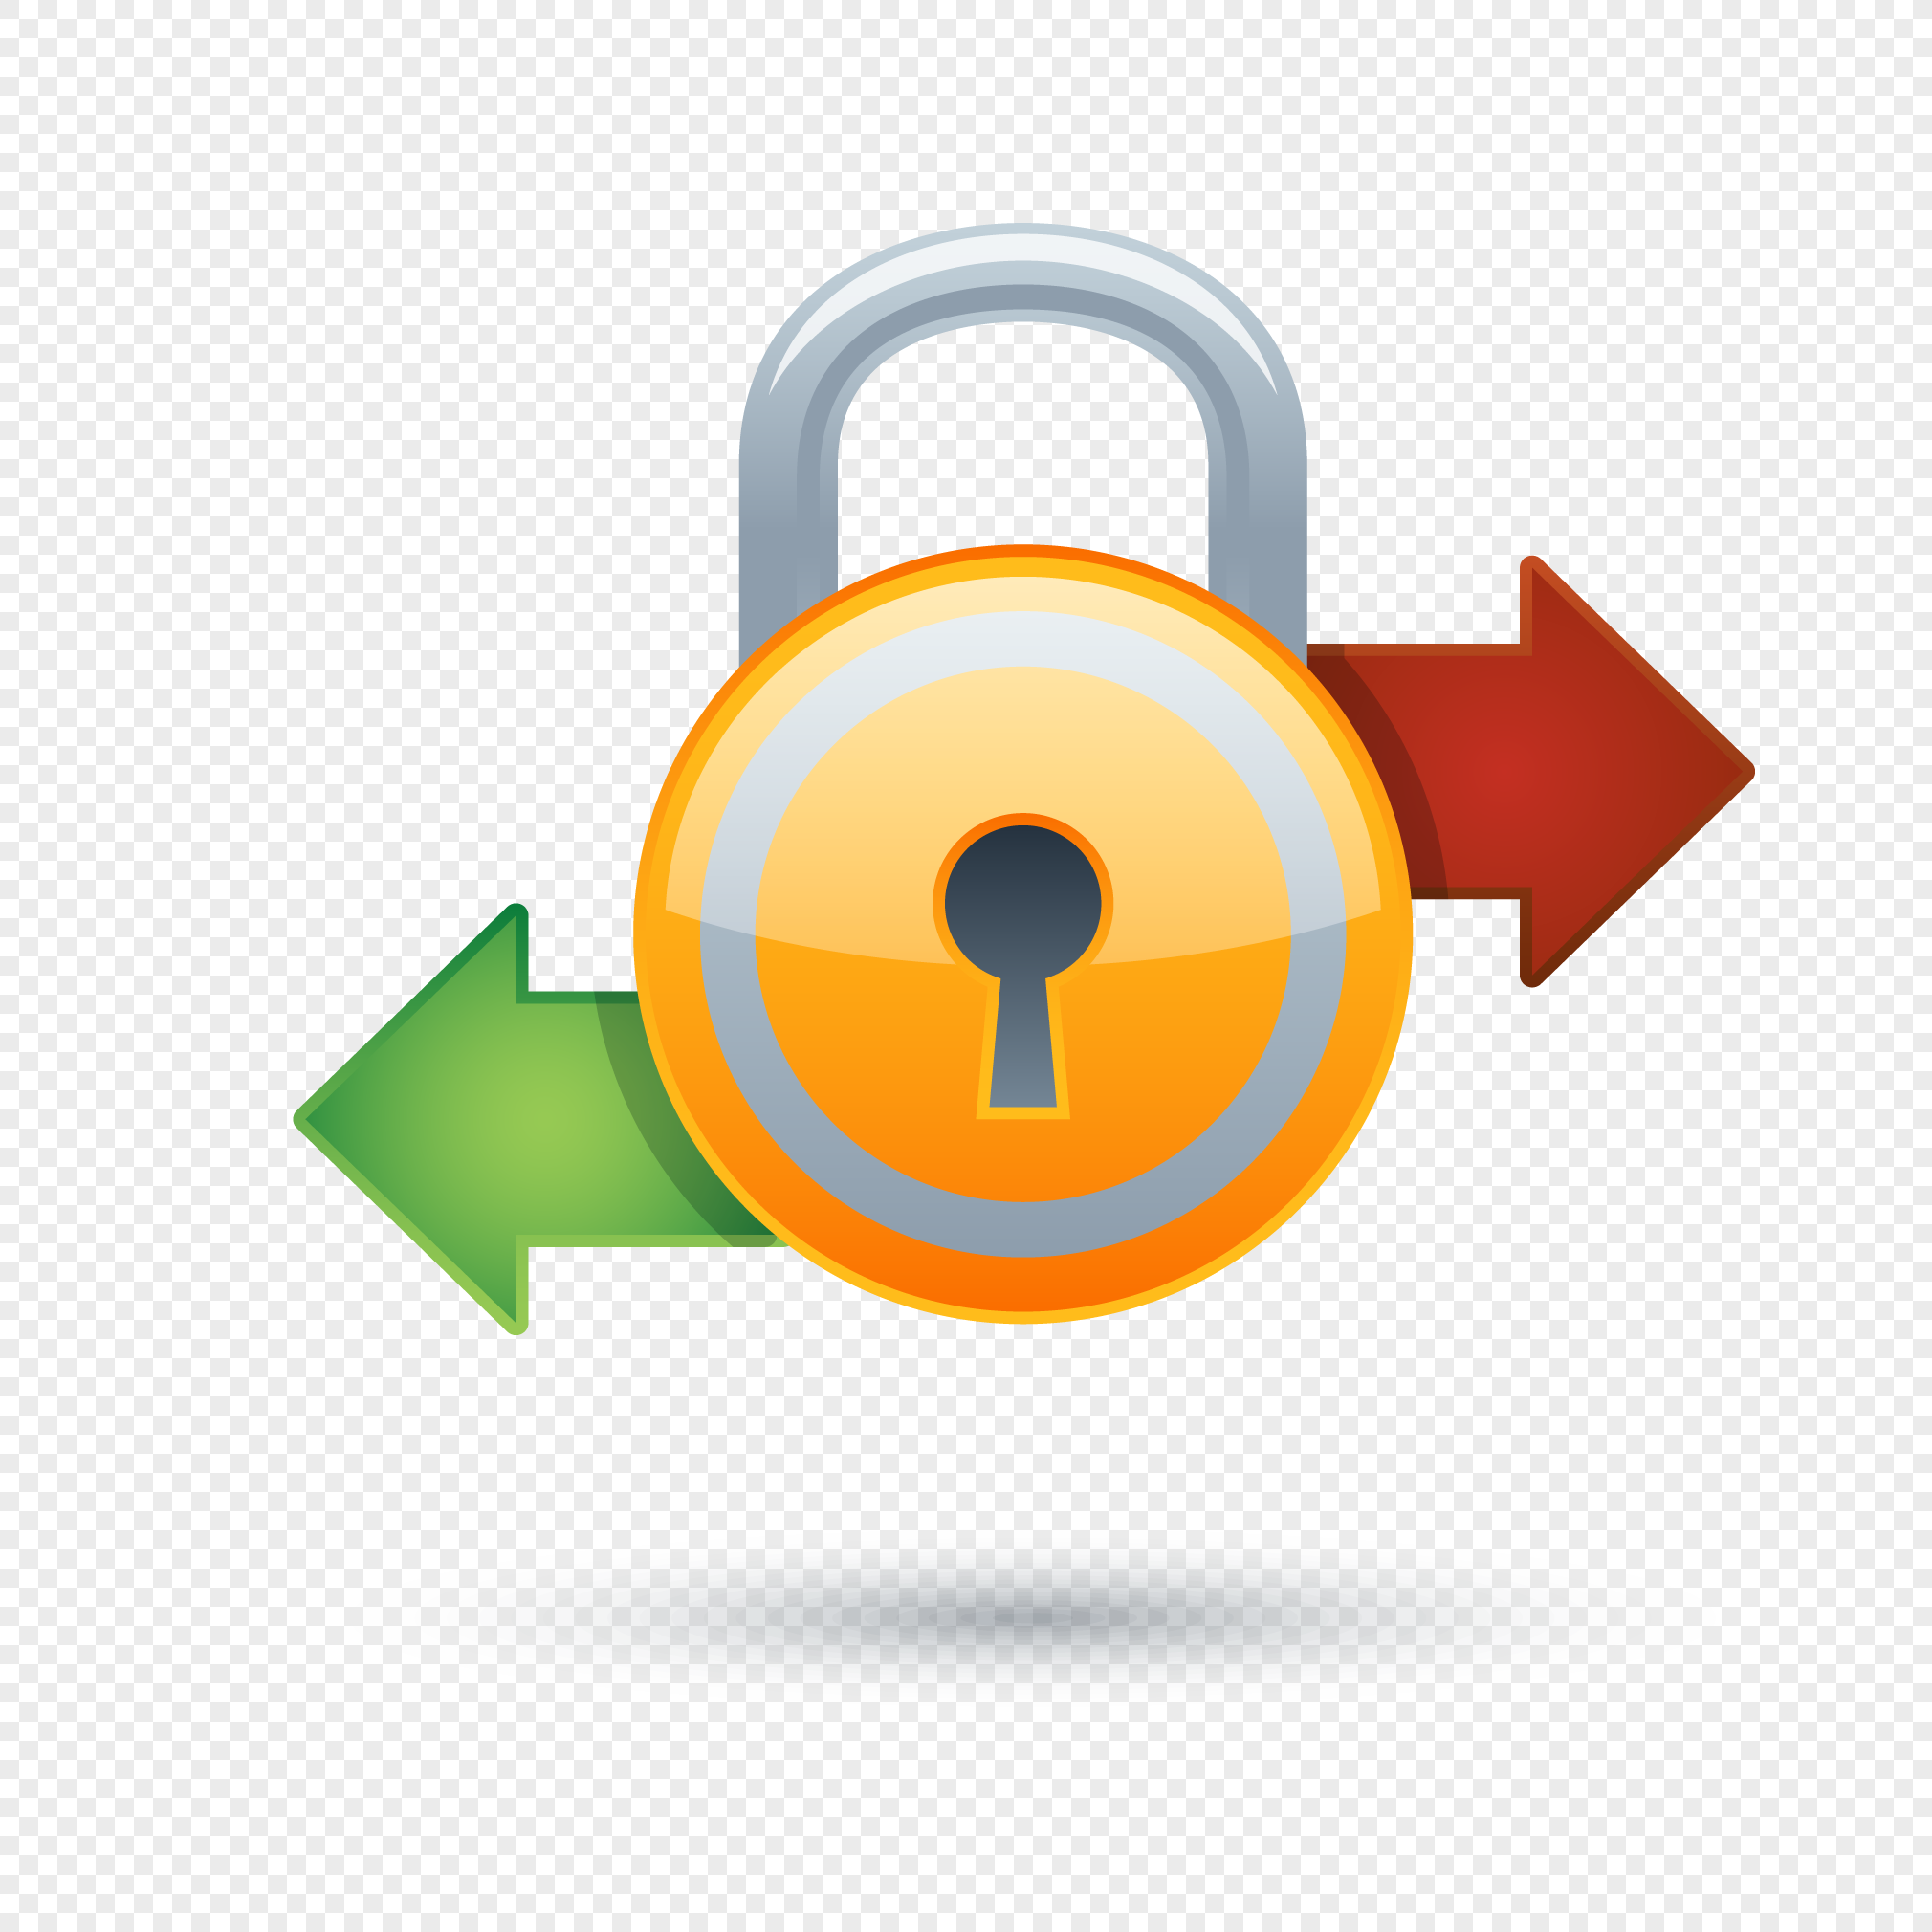 2020x2020 Network Security Lock Vector Icon Png Image Picture Free Download